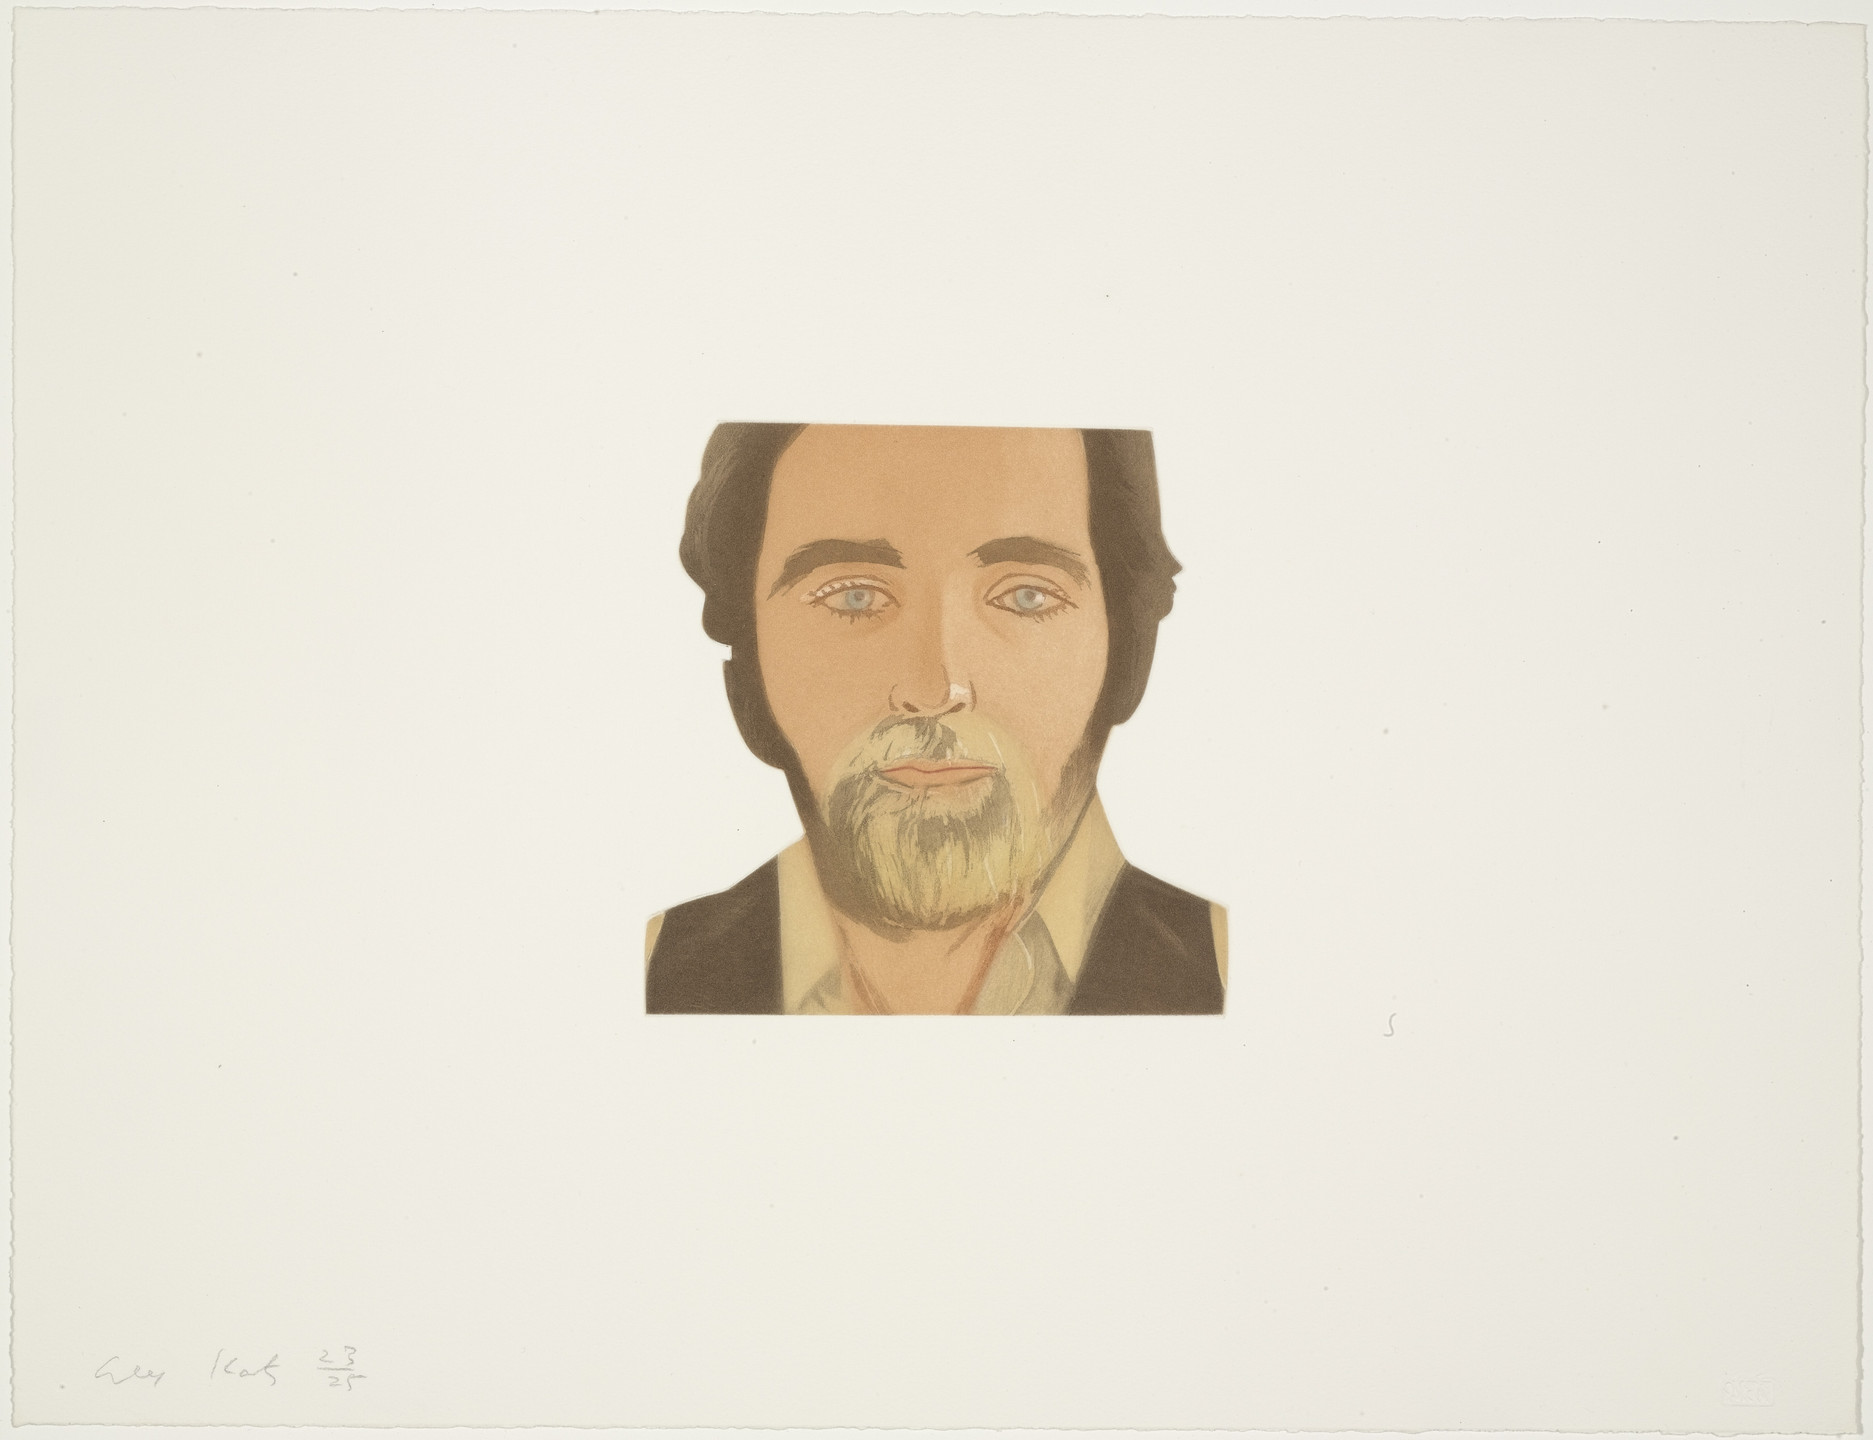 Alex Katz. John Perreault from Face of the Poet. 1978